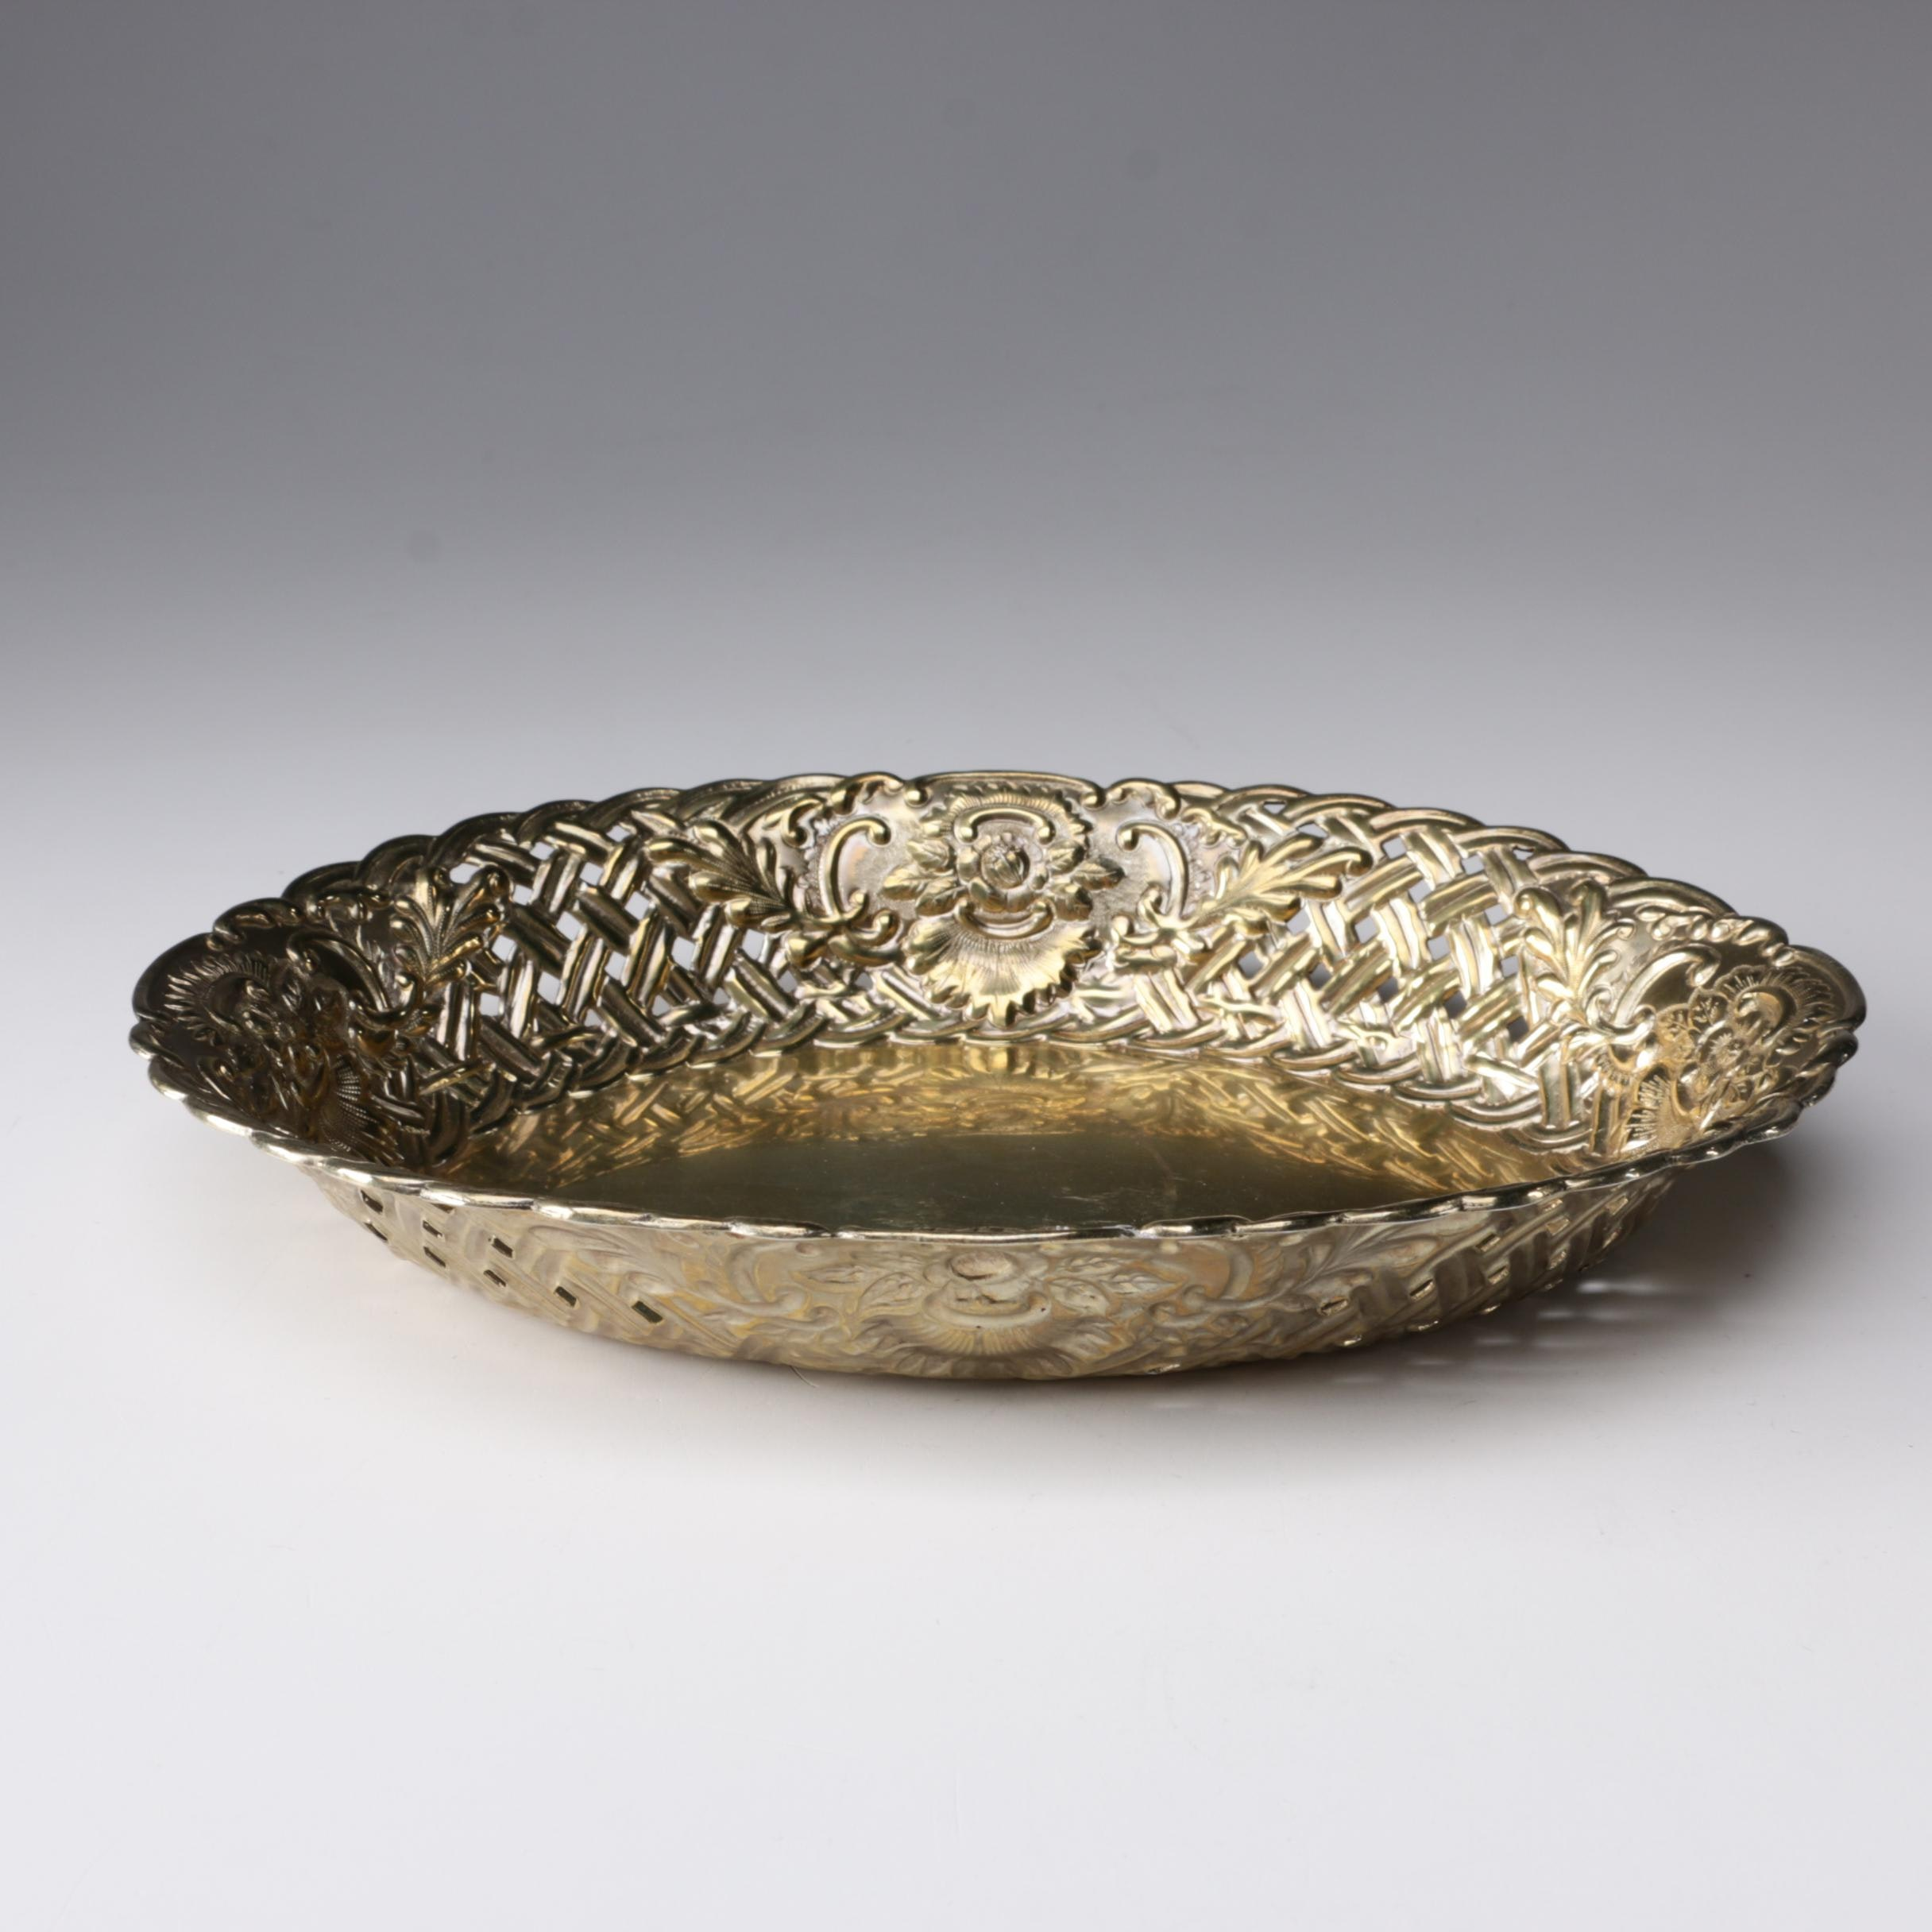 Gorham Sterling and Gold Wash Reticulated Edge Basket Bowl, 1891